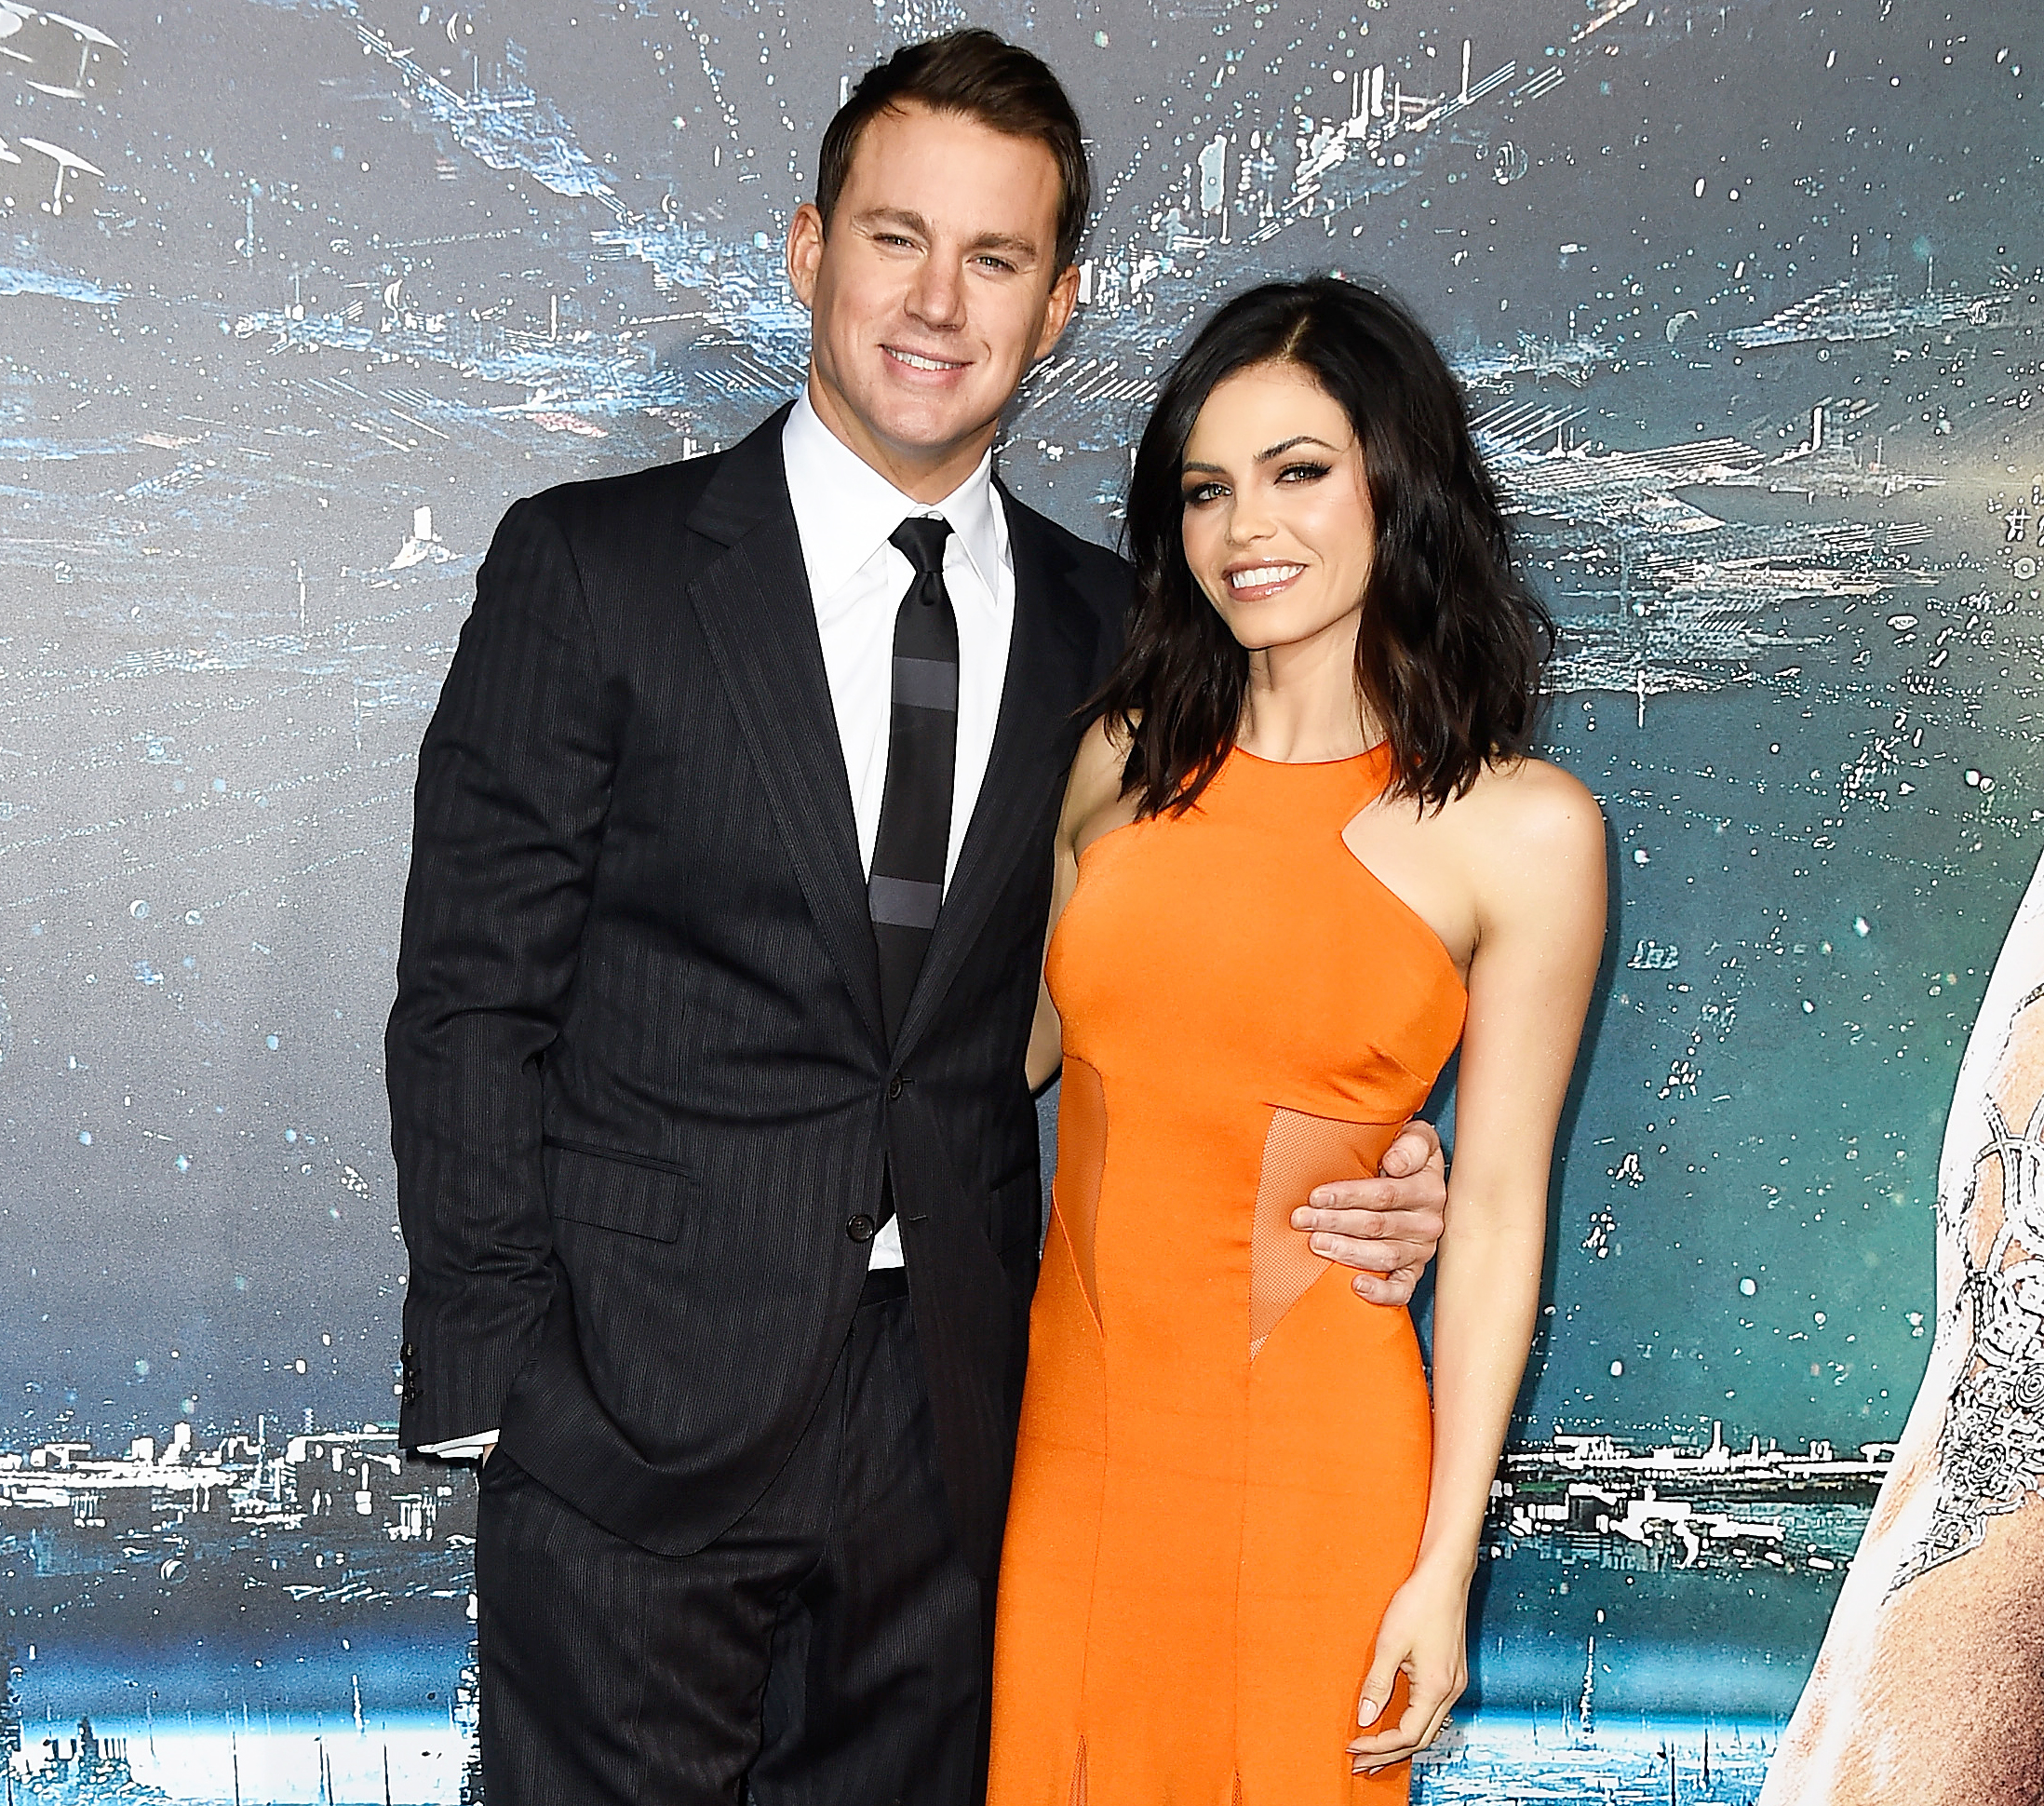 Channing Tatum wishes estranged wife Jenna Dewan a happy Mother's Day